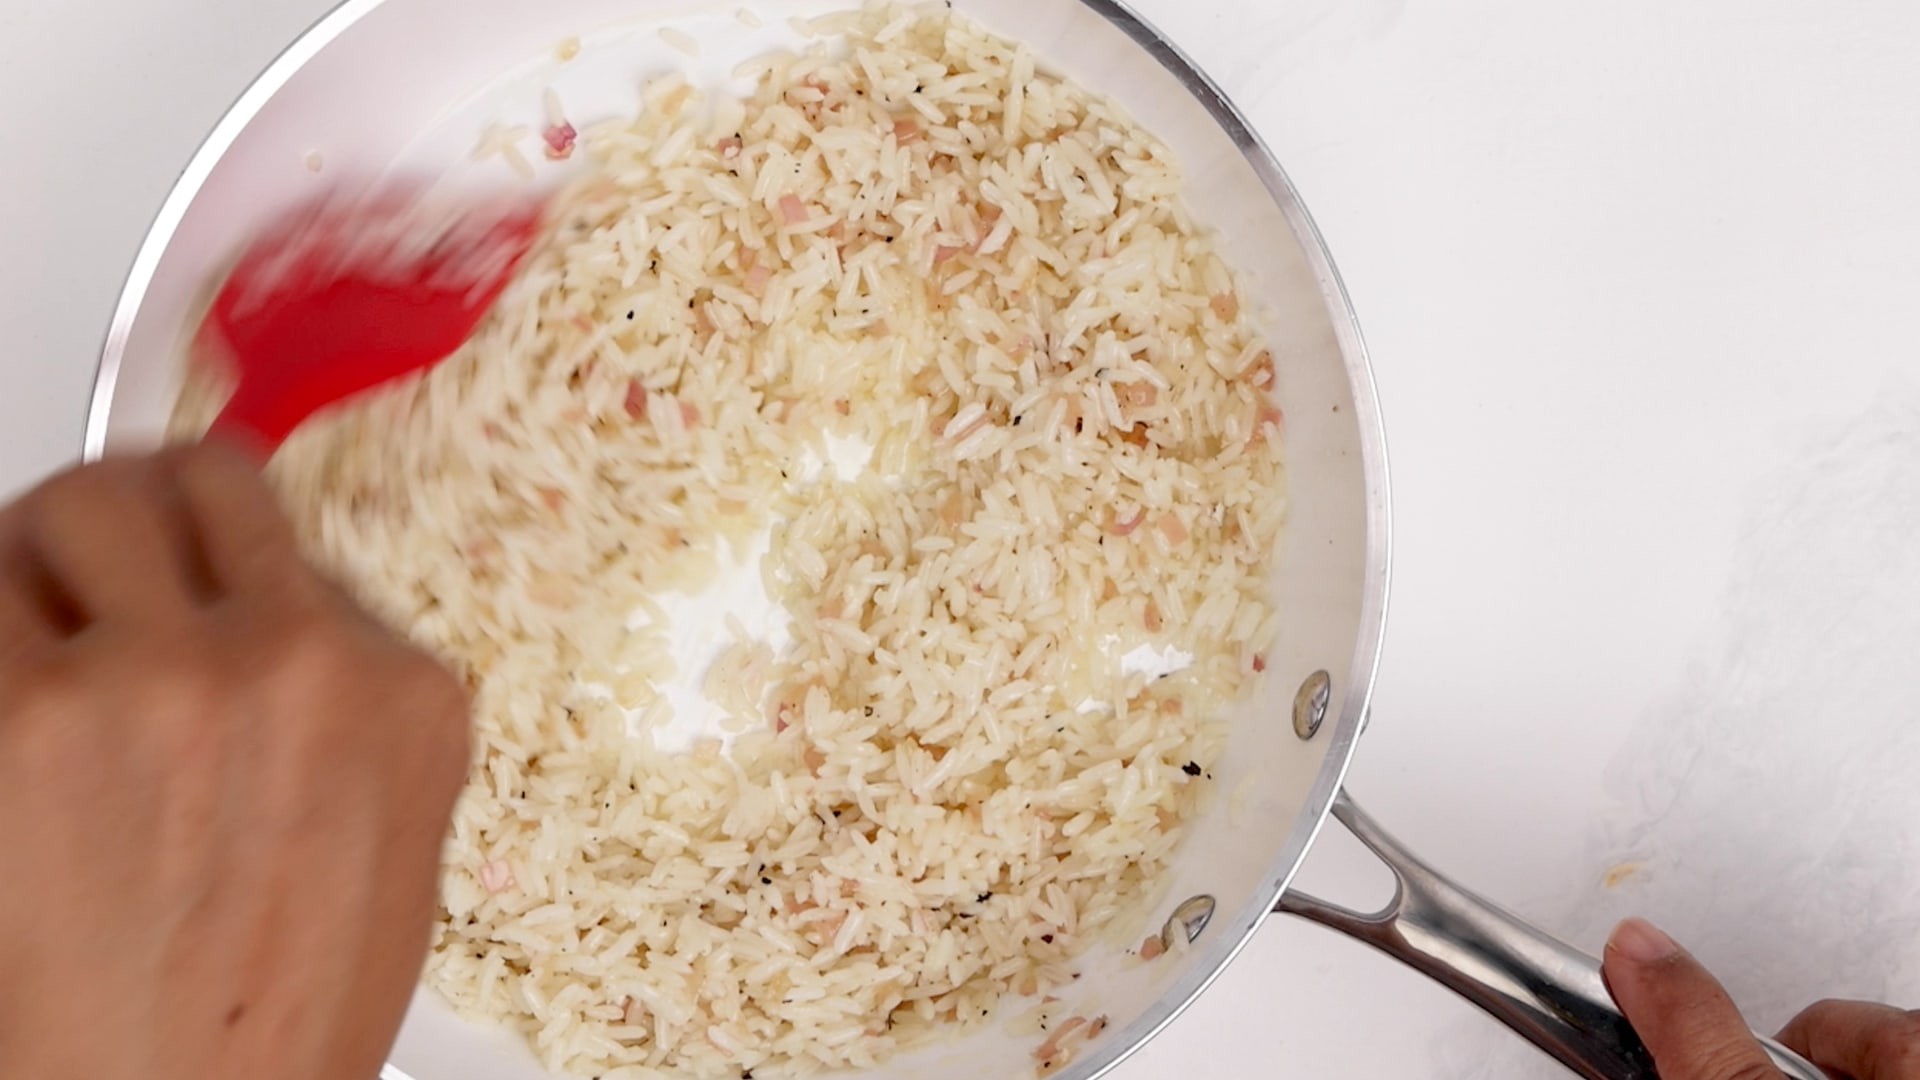 Heating the rice